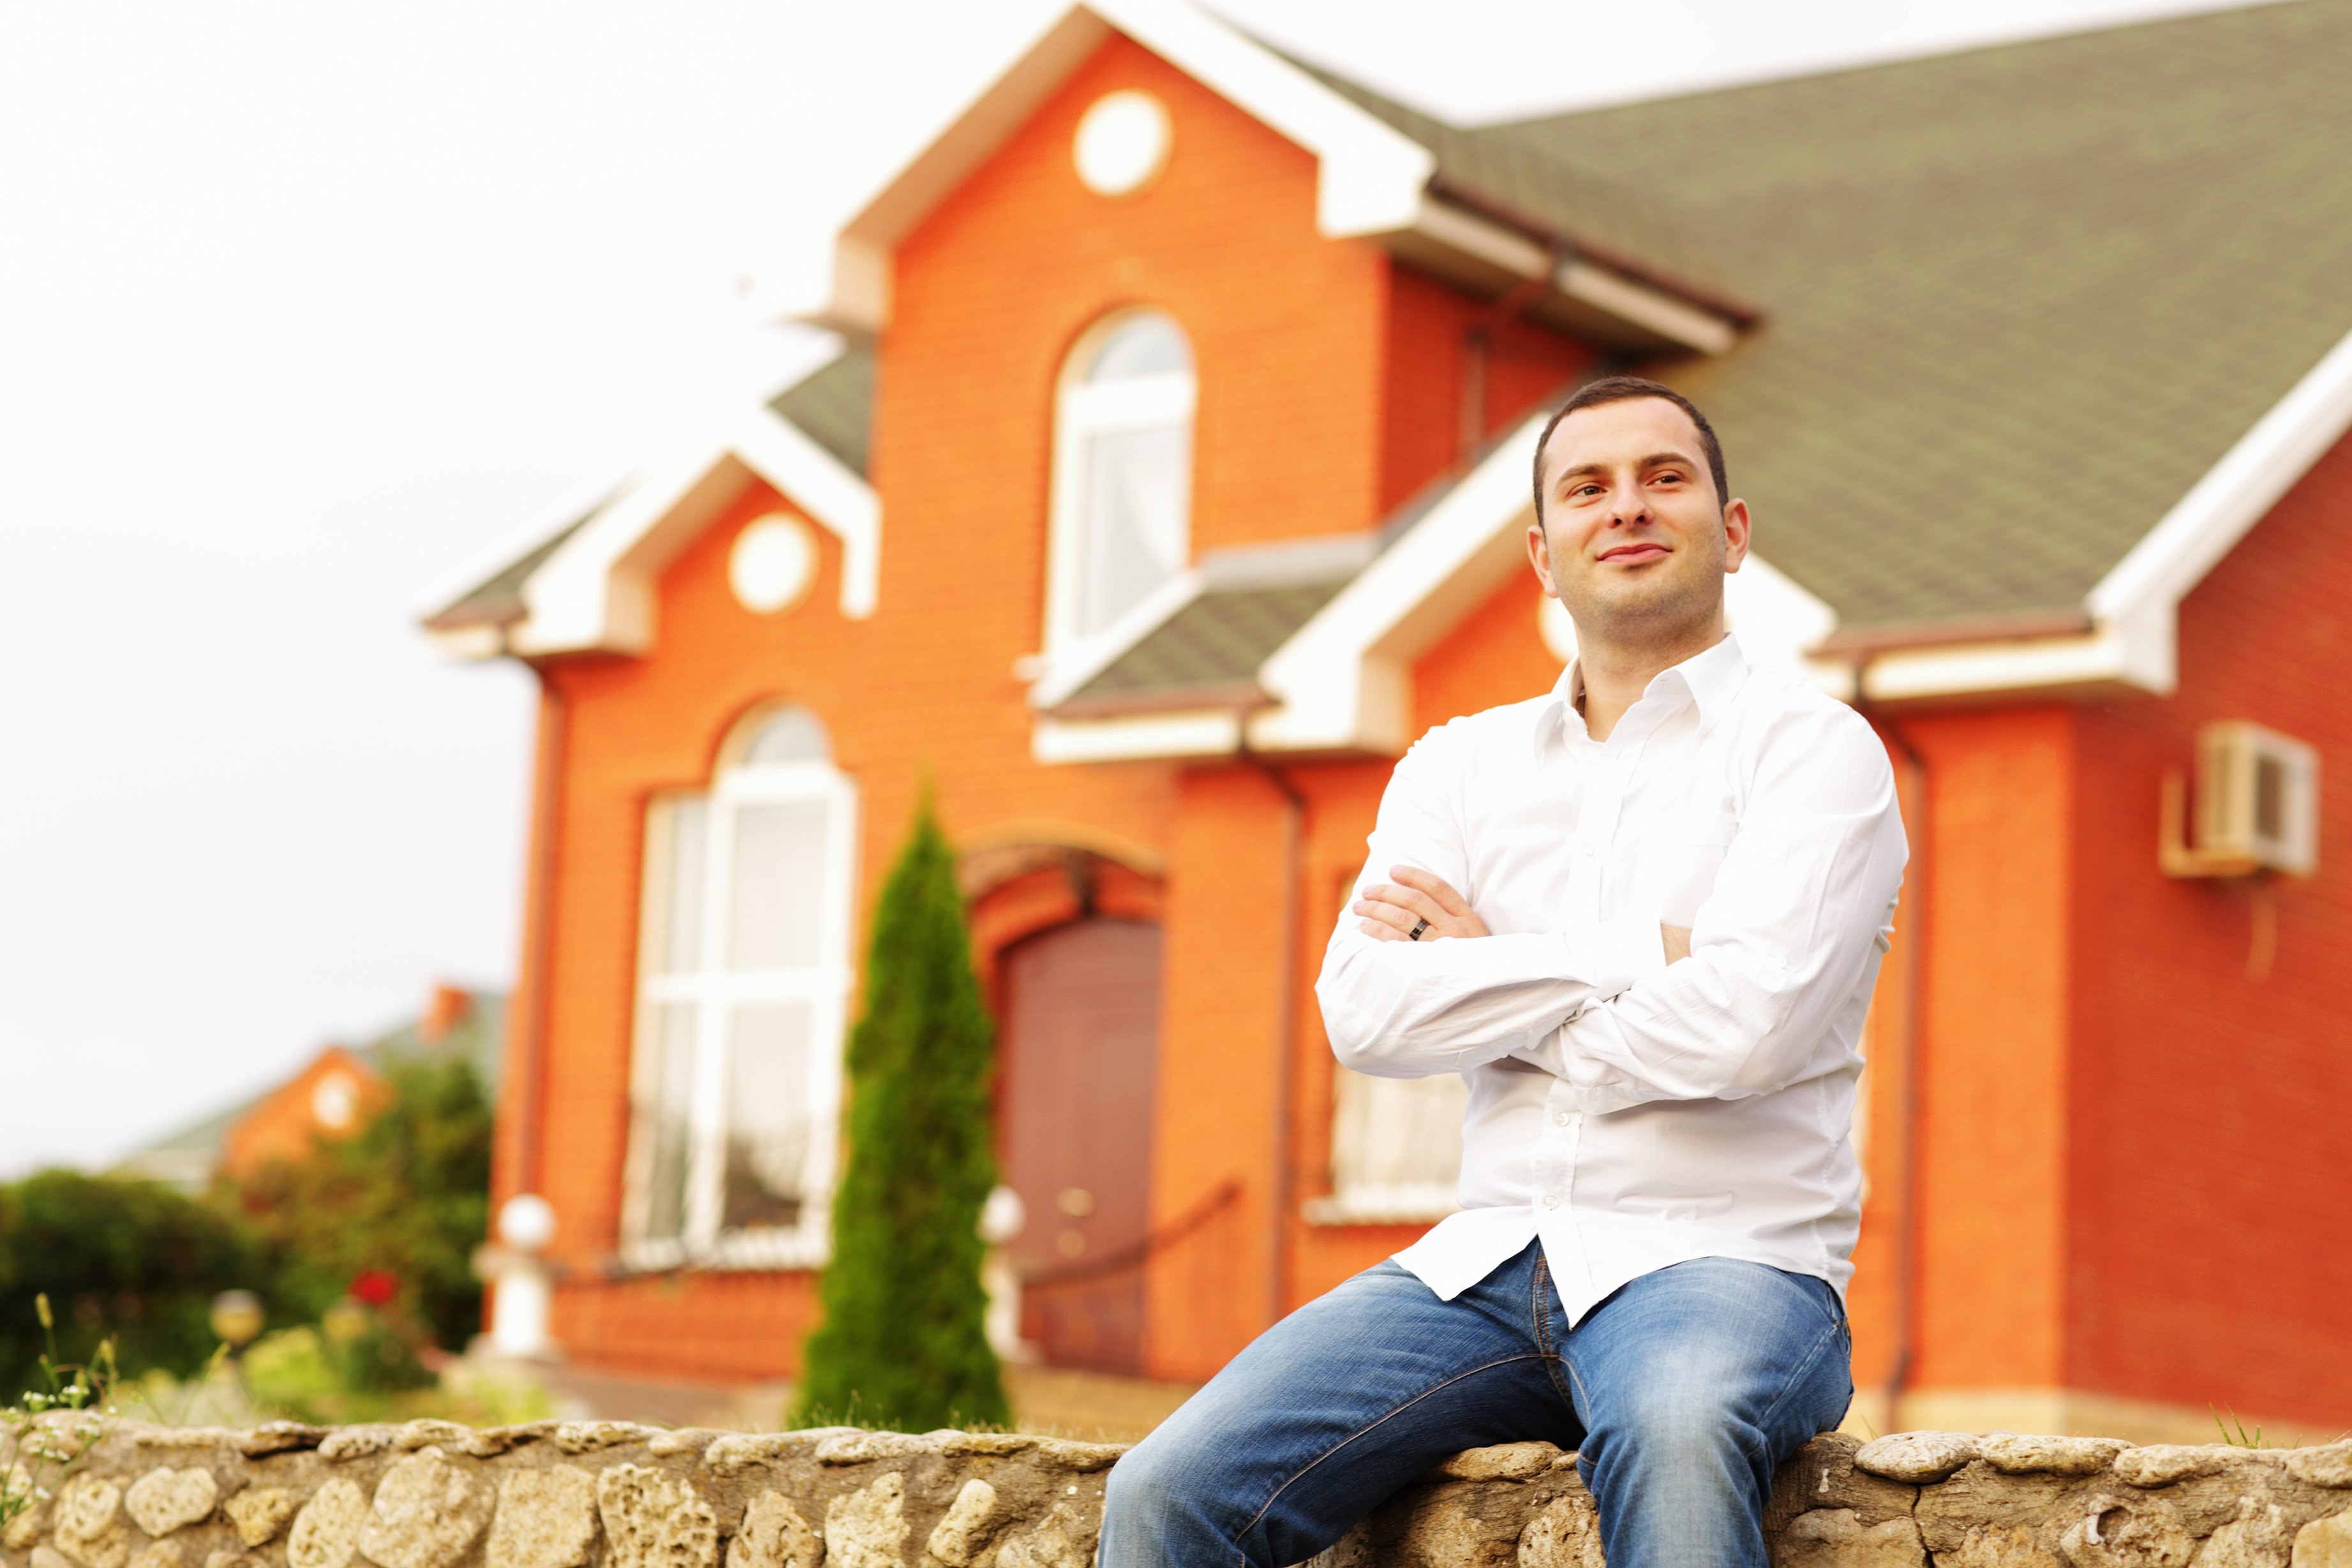 Happy man sitting in front of an orange-bricked house.| Photo: Shutterstock